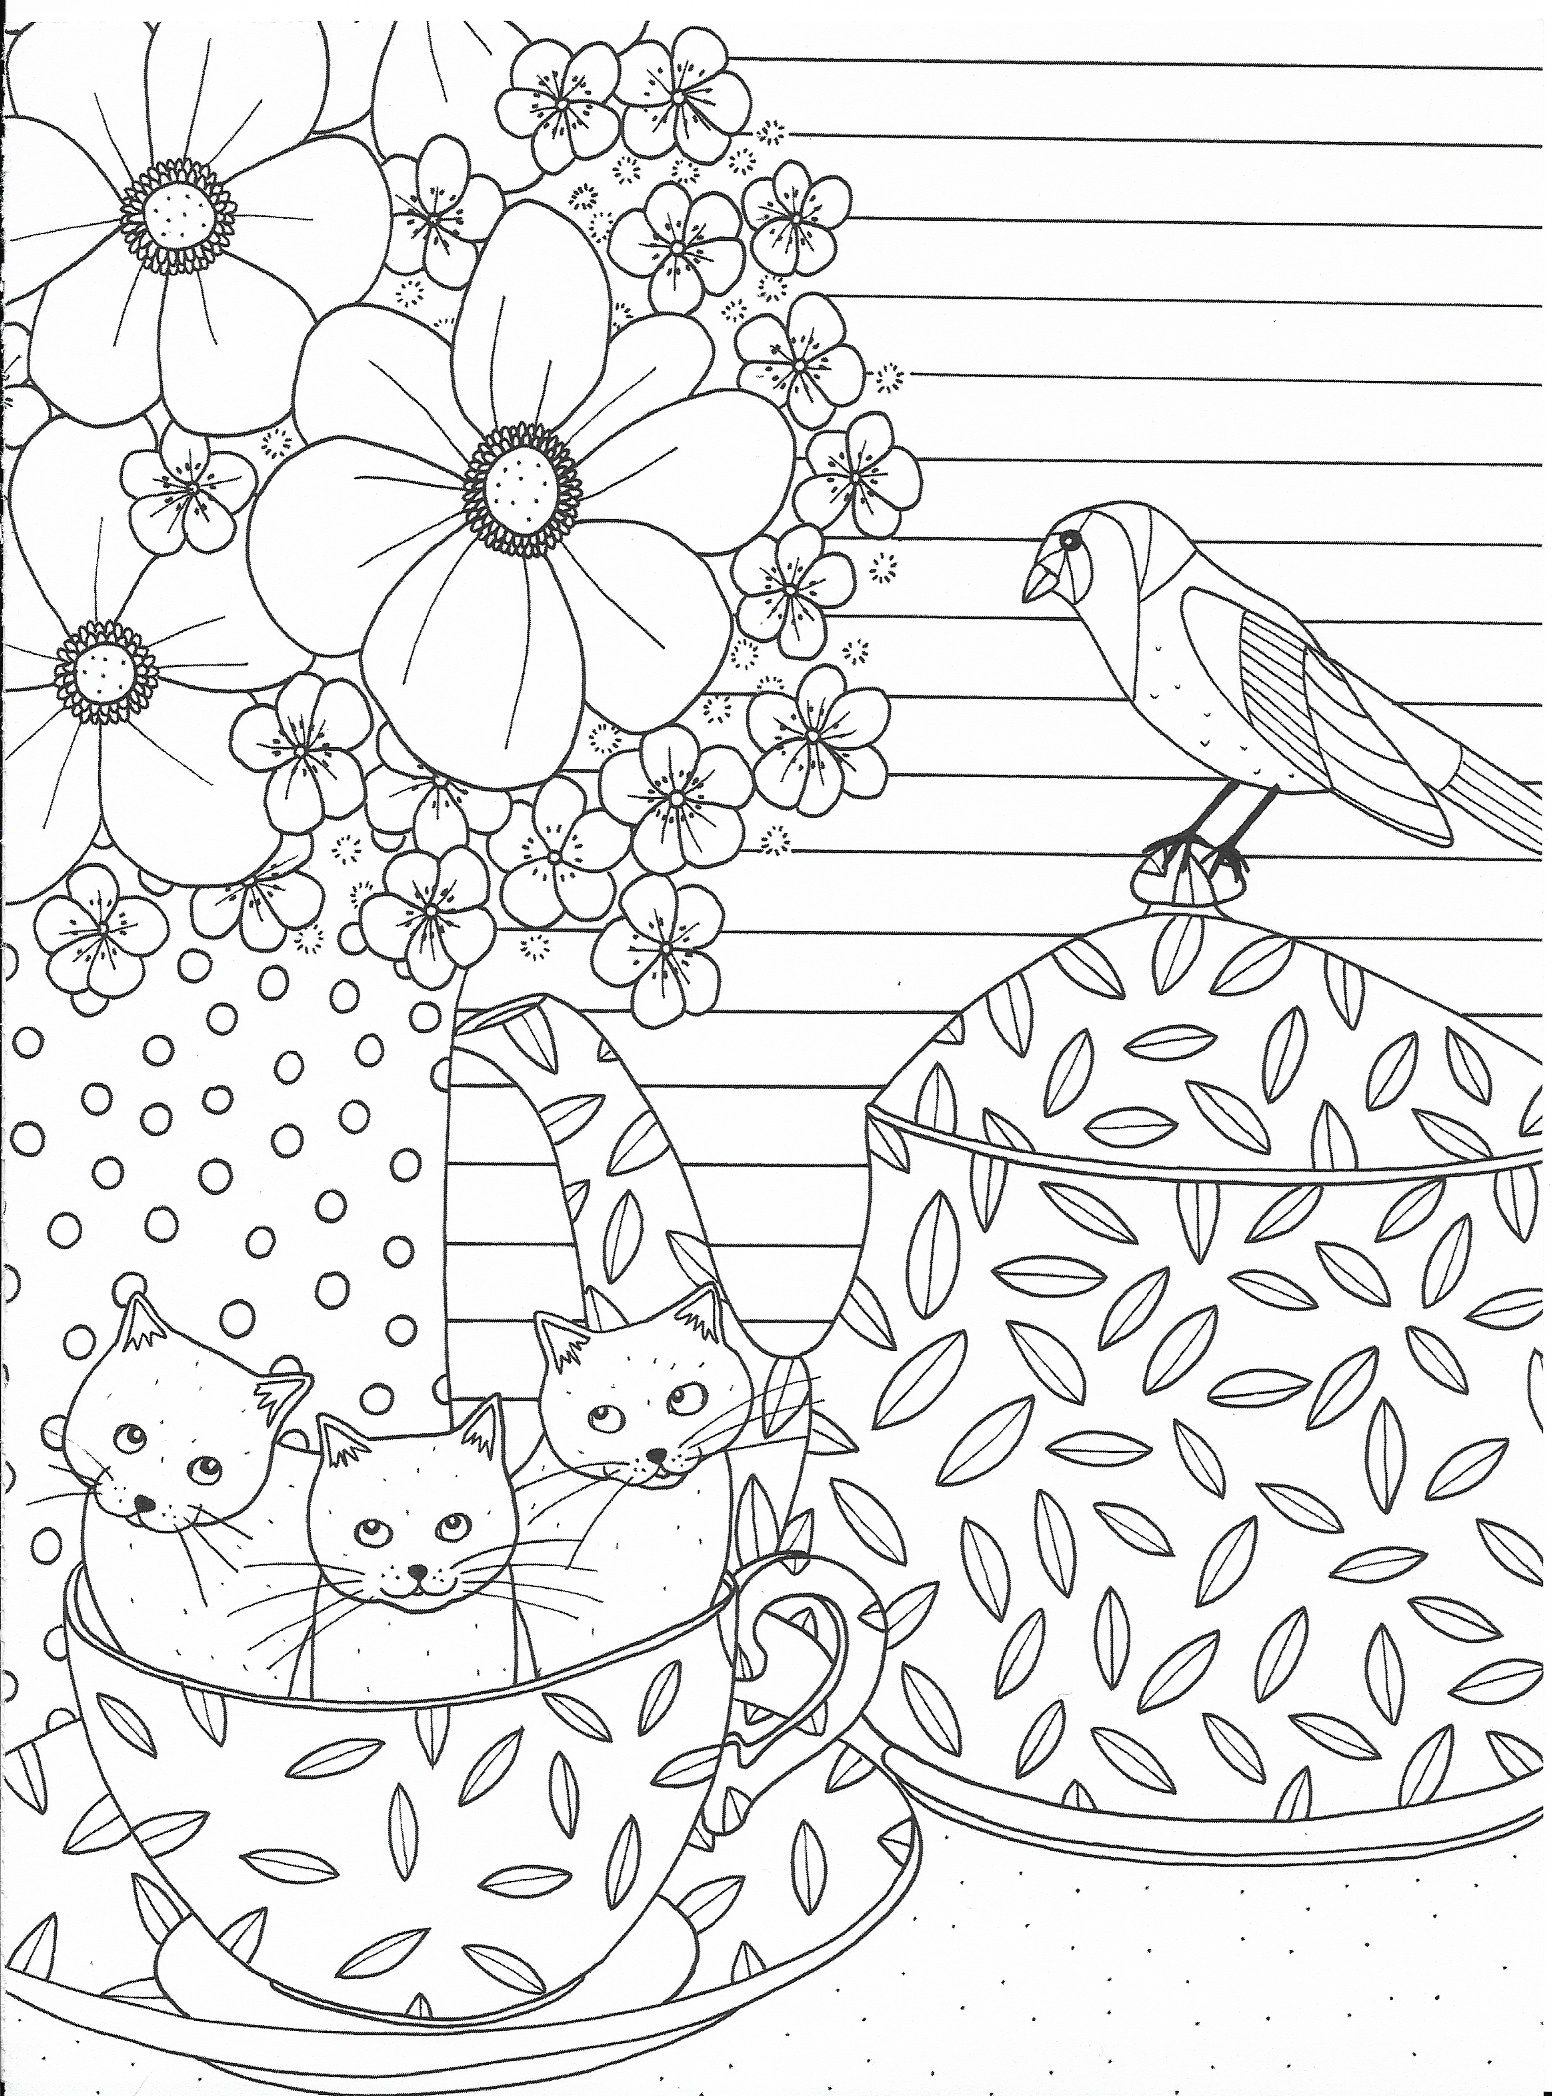 Cute Cats In A Cup Coloring Page | Paper Craft | Adult